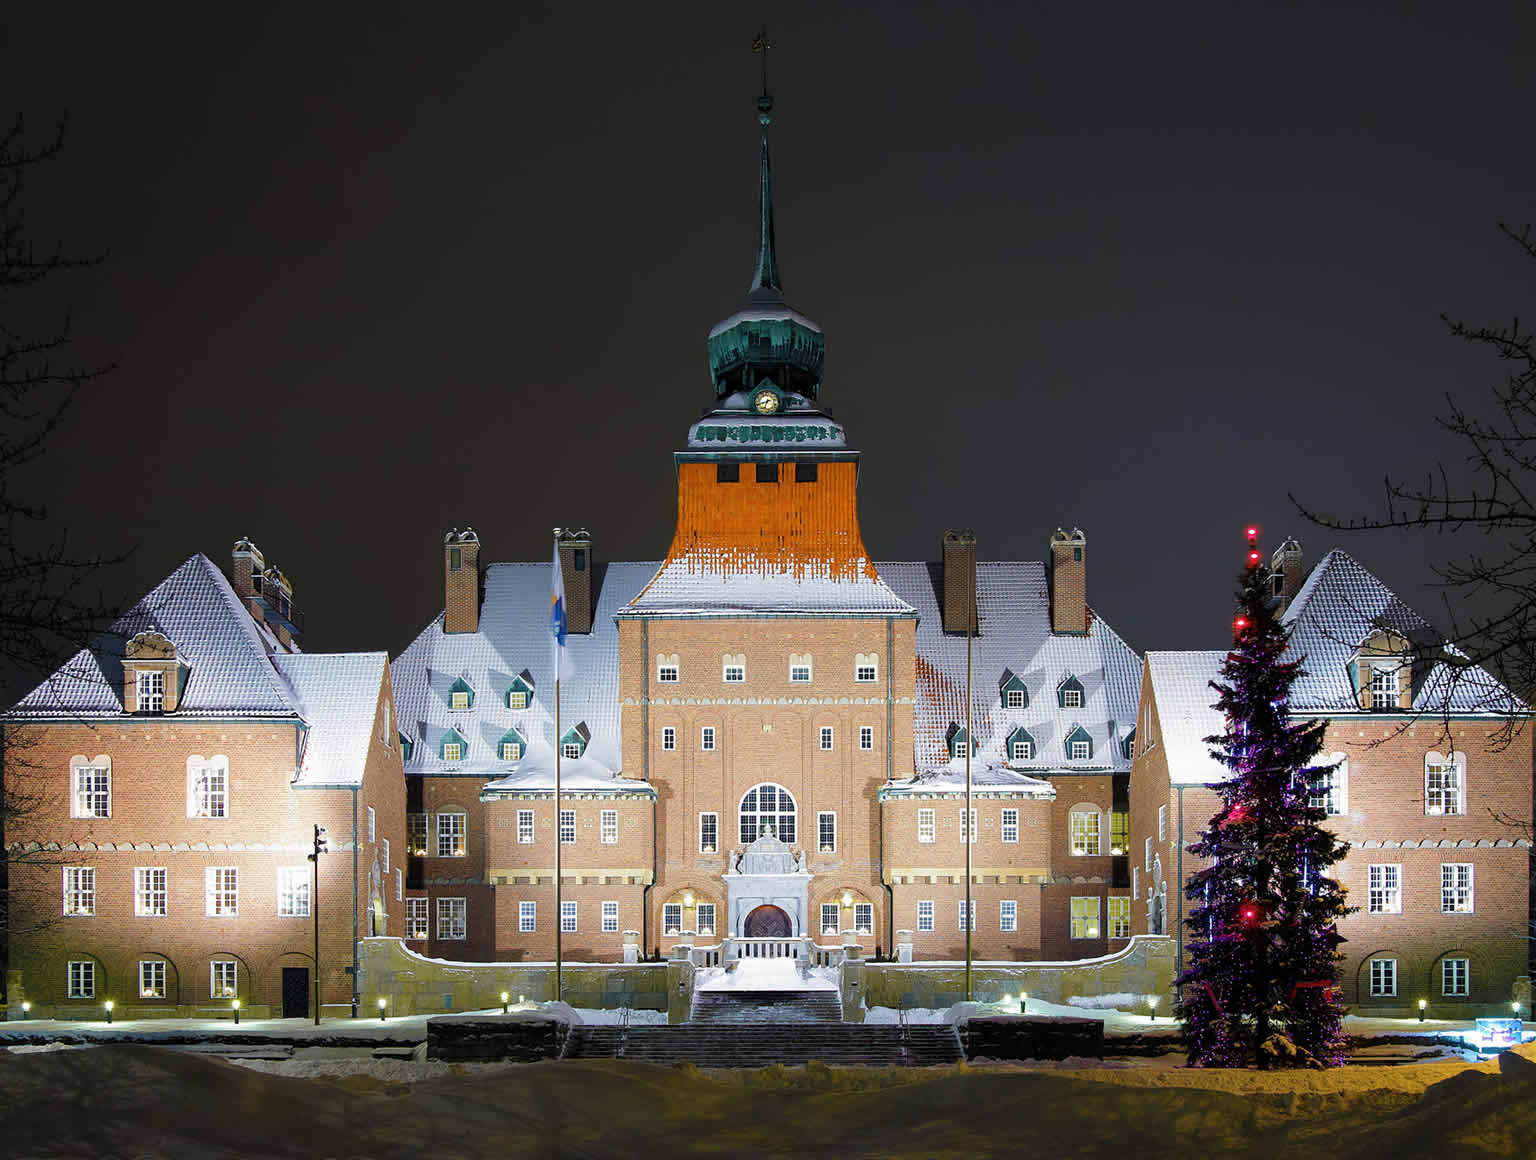 City Hall in Ostersund, Sweden